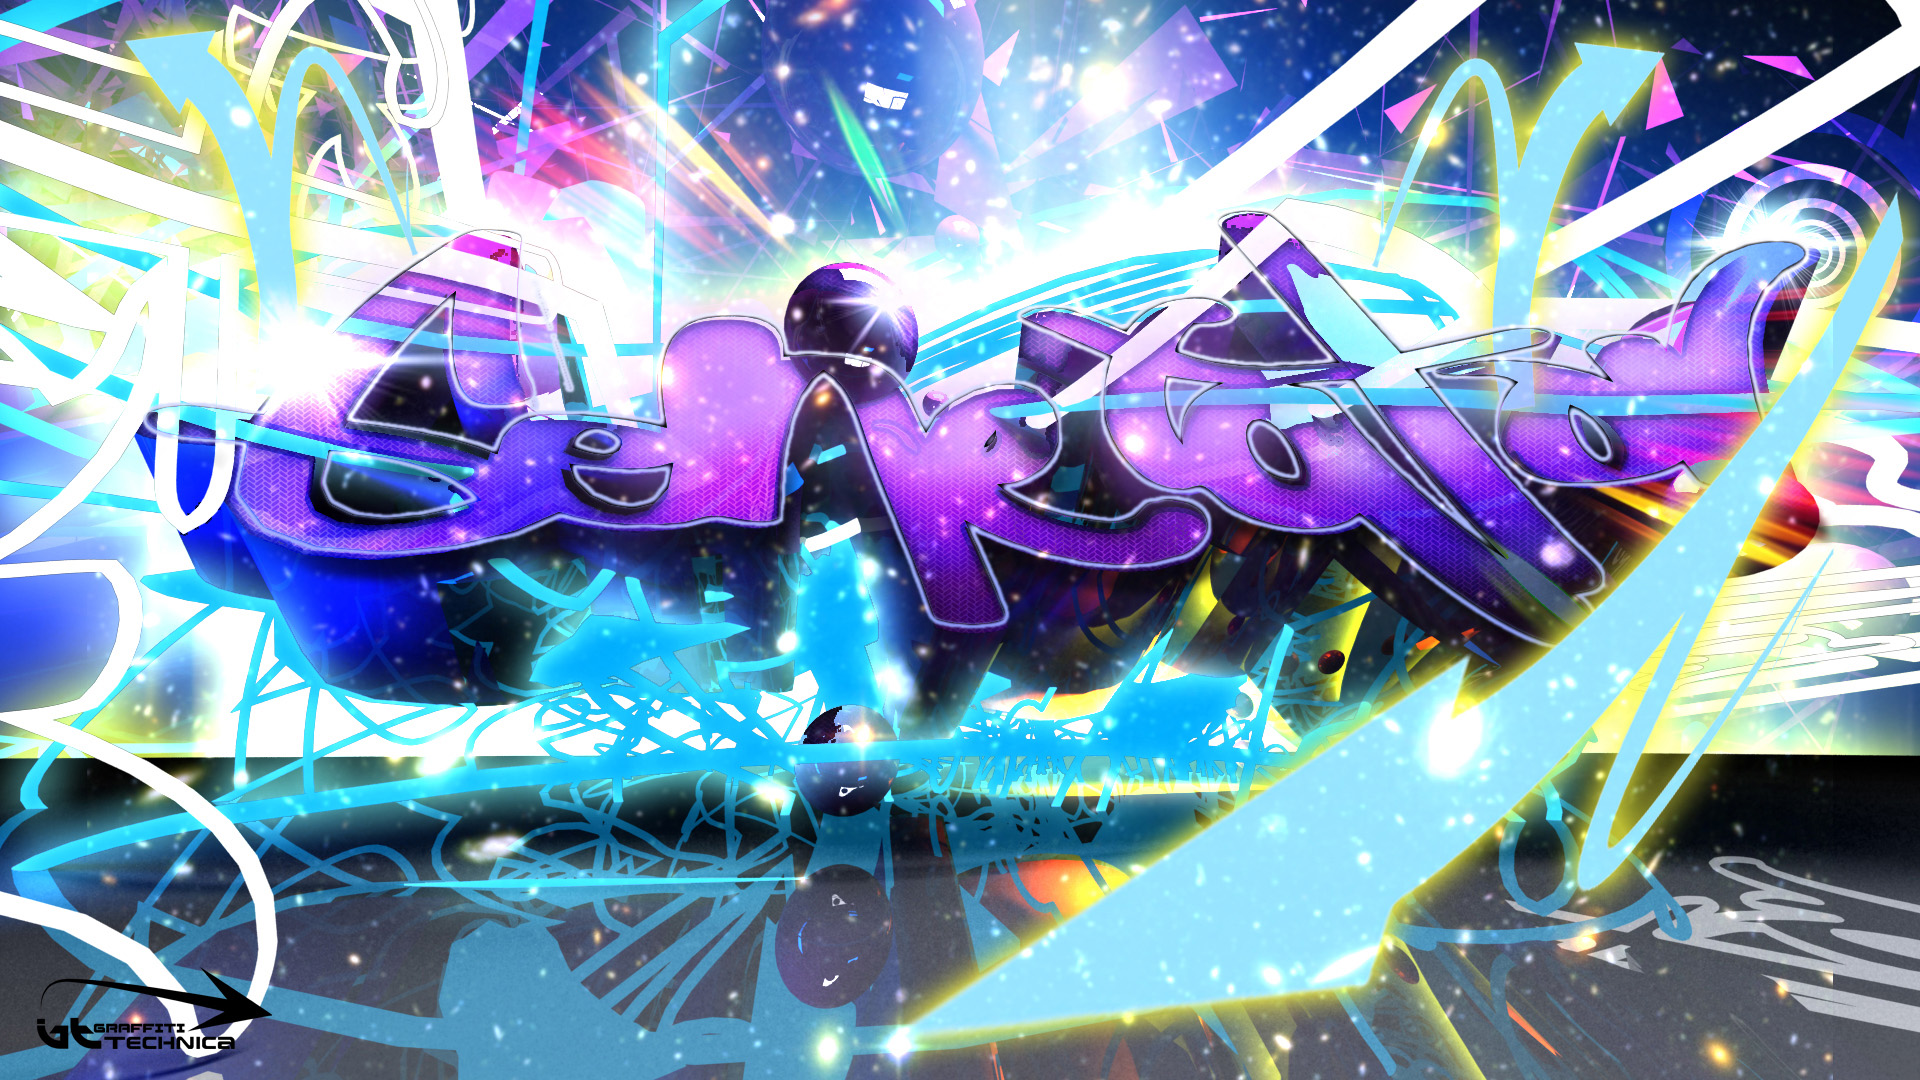 50 graffiti art desktop wallpapers best design options 1920x1080